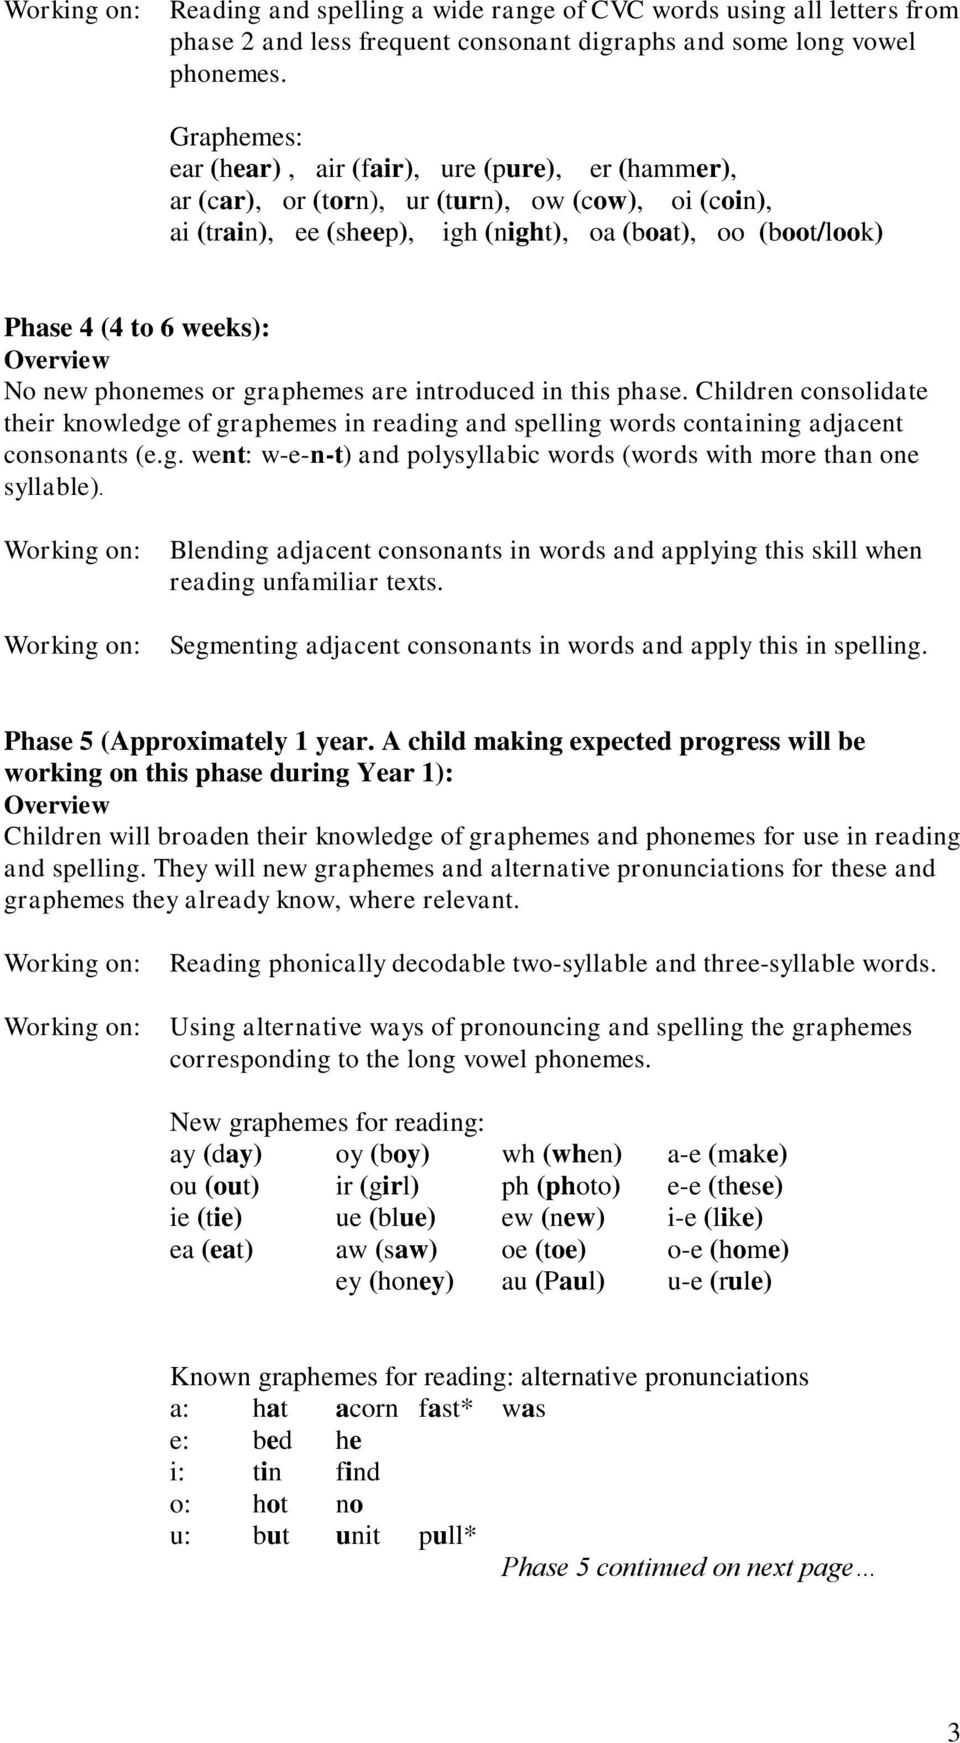 No new phonemes or graphemes are introduced in this phase. Children consolidate their knowledge of graphemes in reading and spelling words containing adjacent consonants (e.g. went: w-e-n-t) and polysyllabic words (words with more than one syllable).